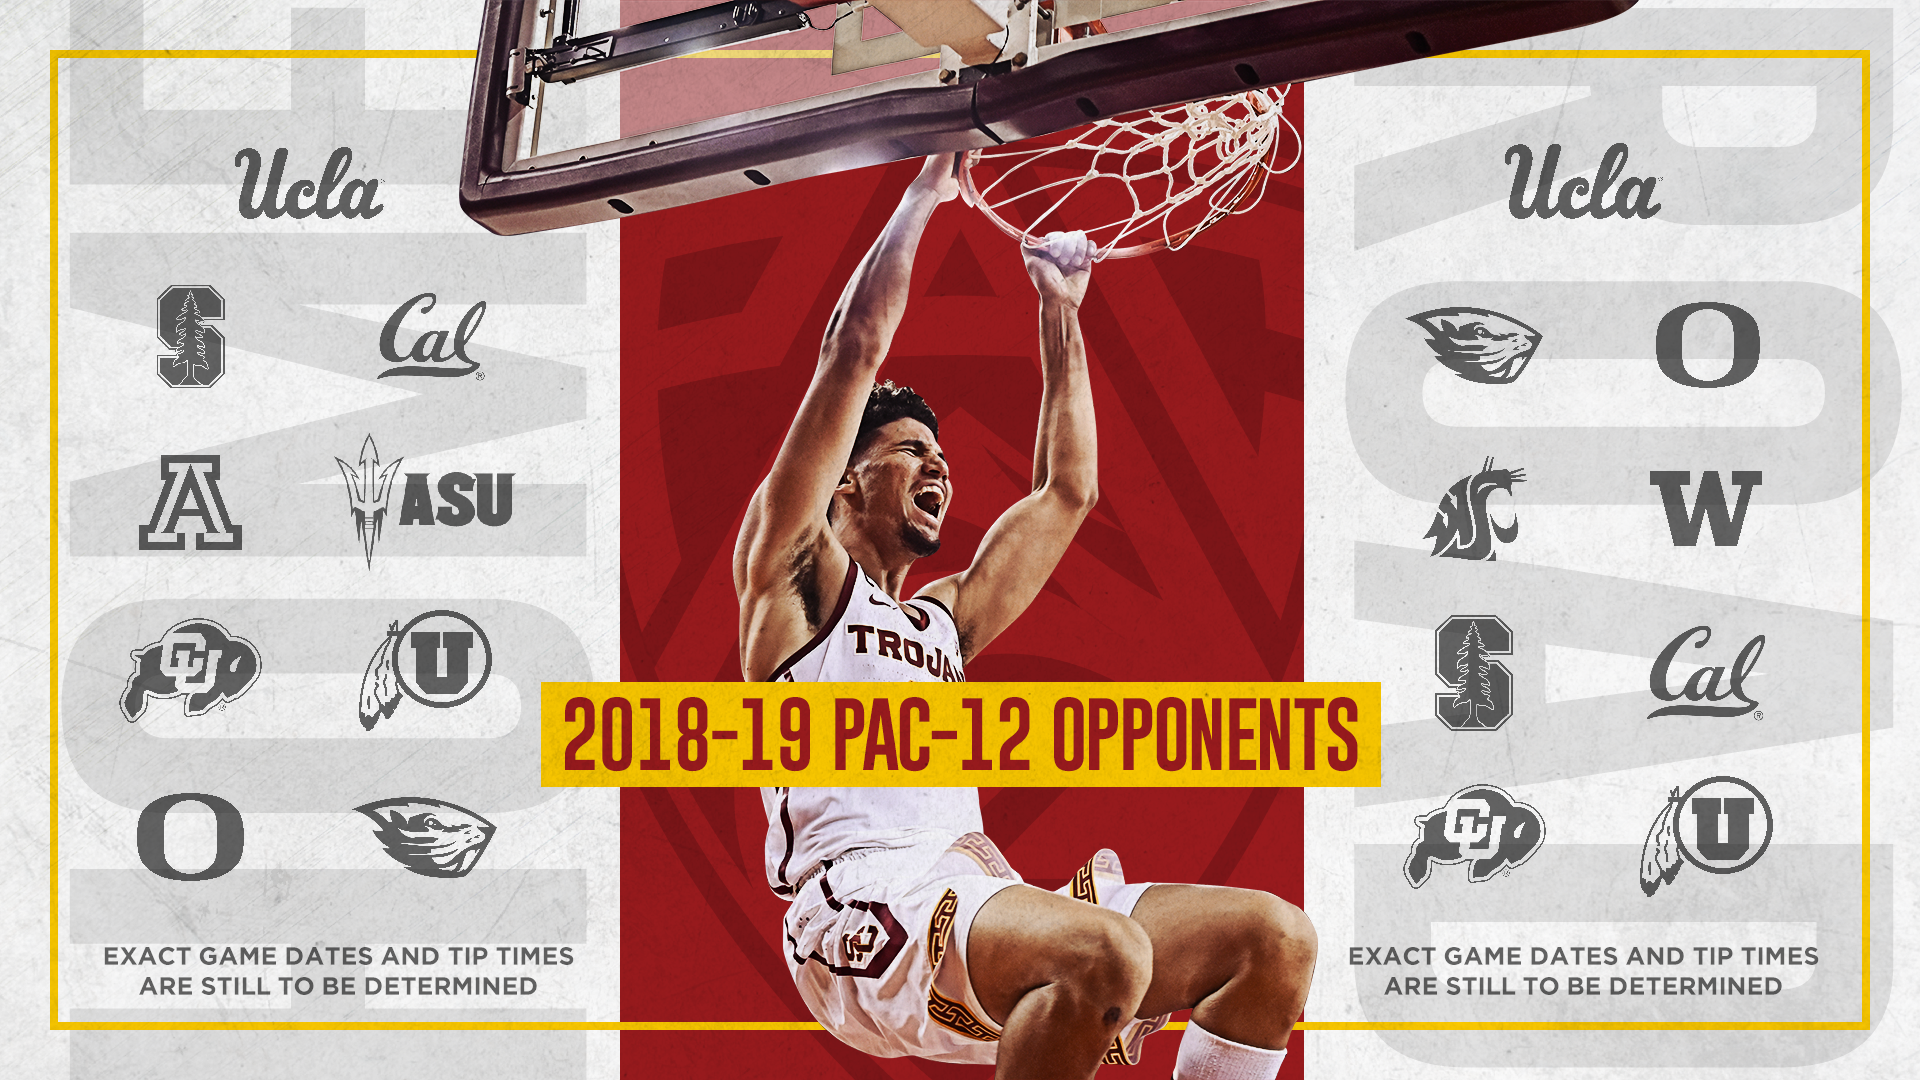 Usc Announces 2018 19 Men S Basketball Schedule Usc Athletics